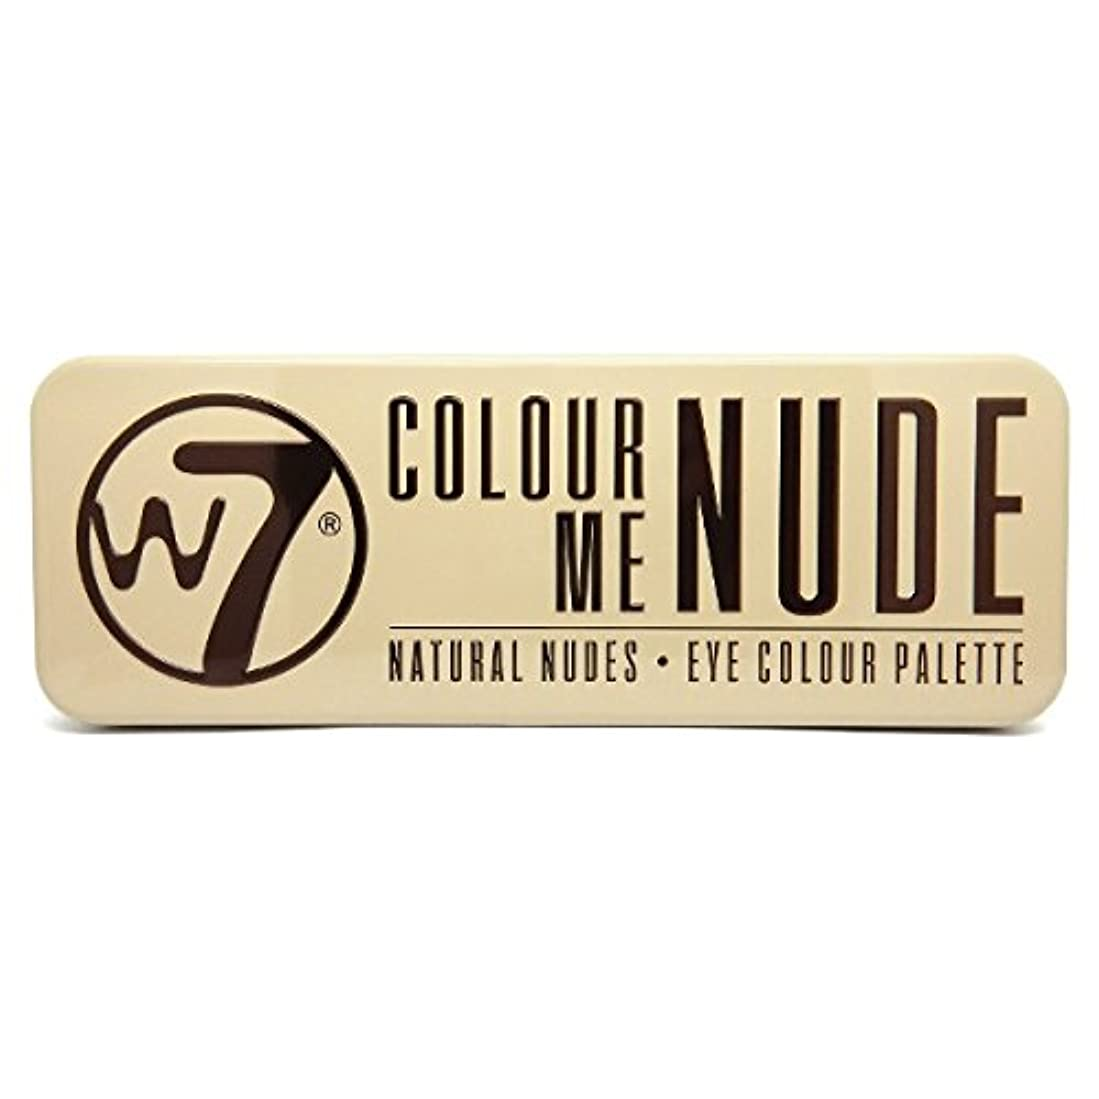 占める第二老朽化したW7 Colour Me Nude Natural Nudes Eye Colour Palette (並行輸入品)